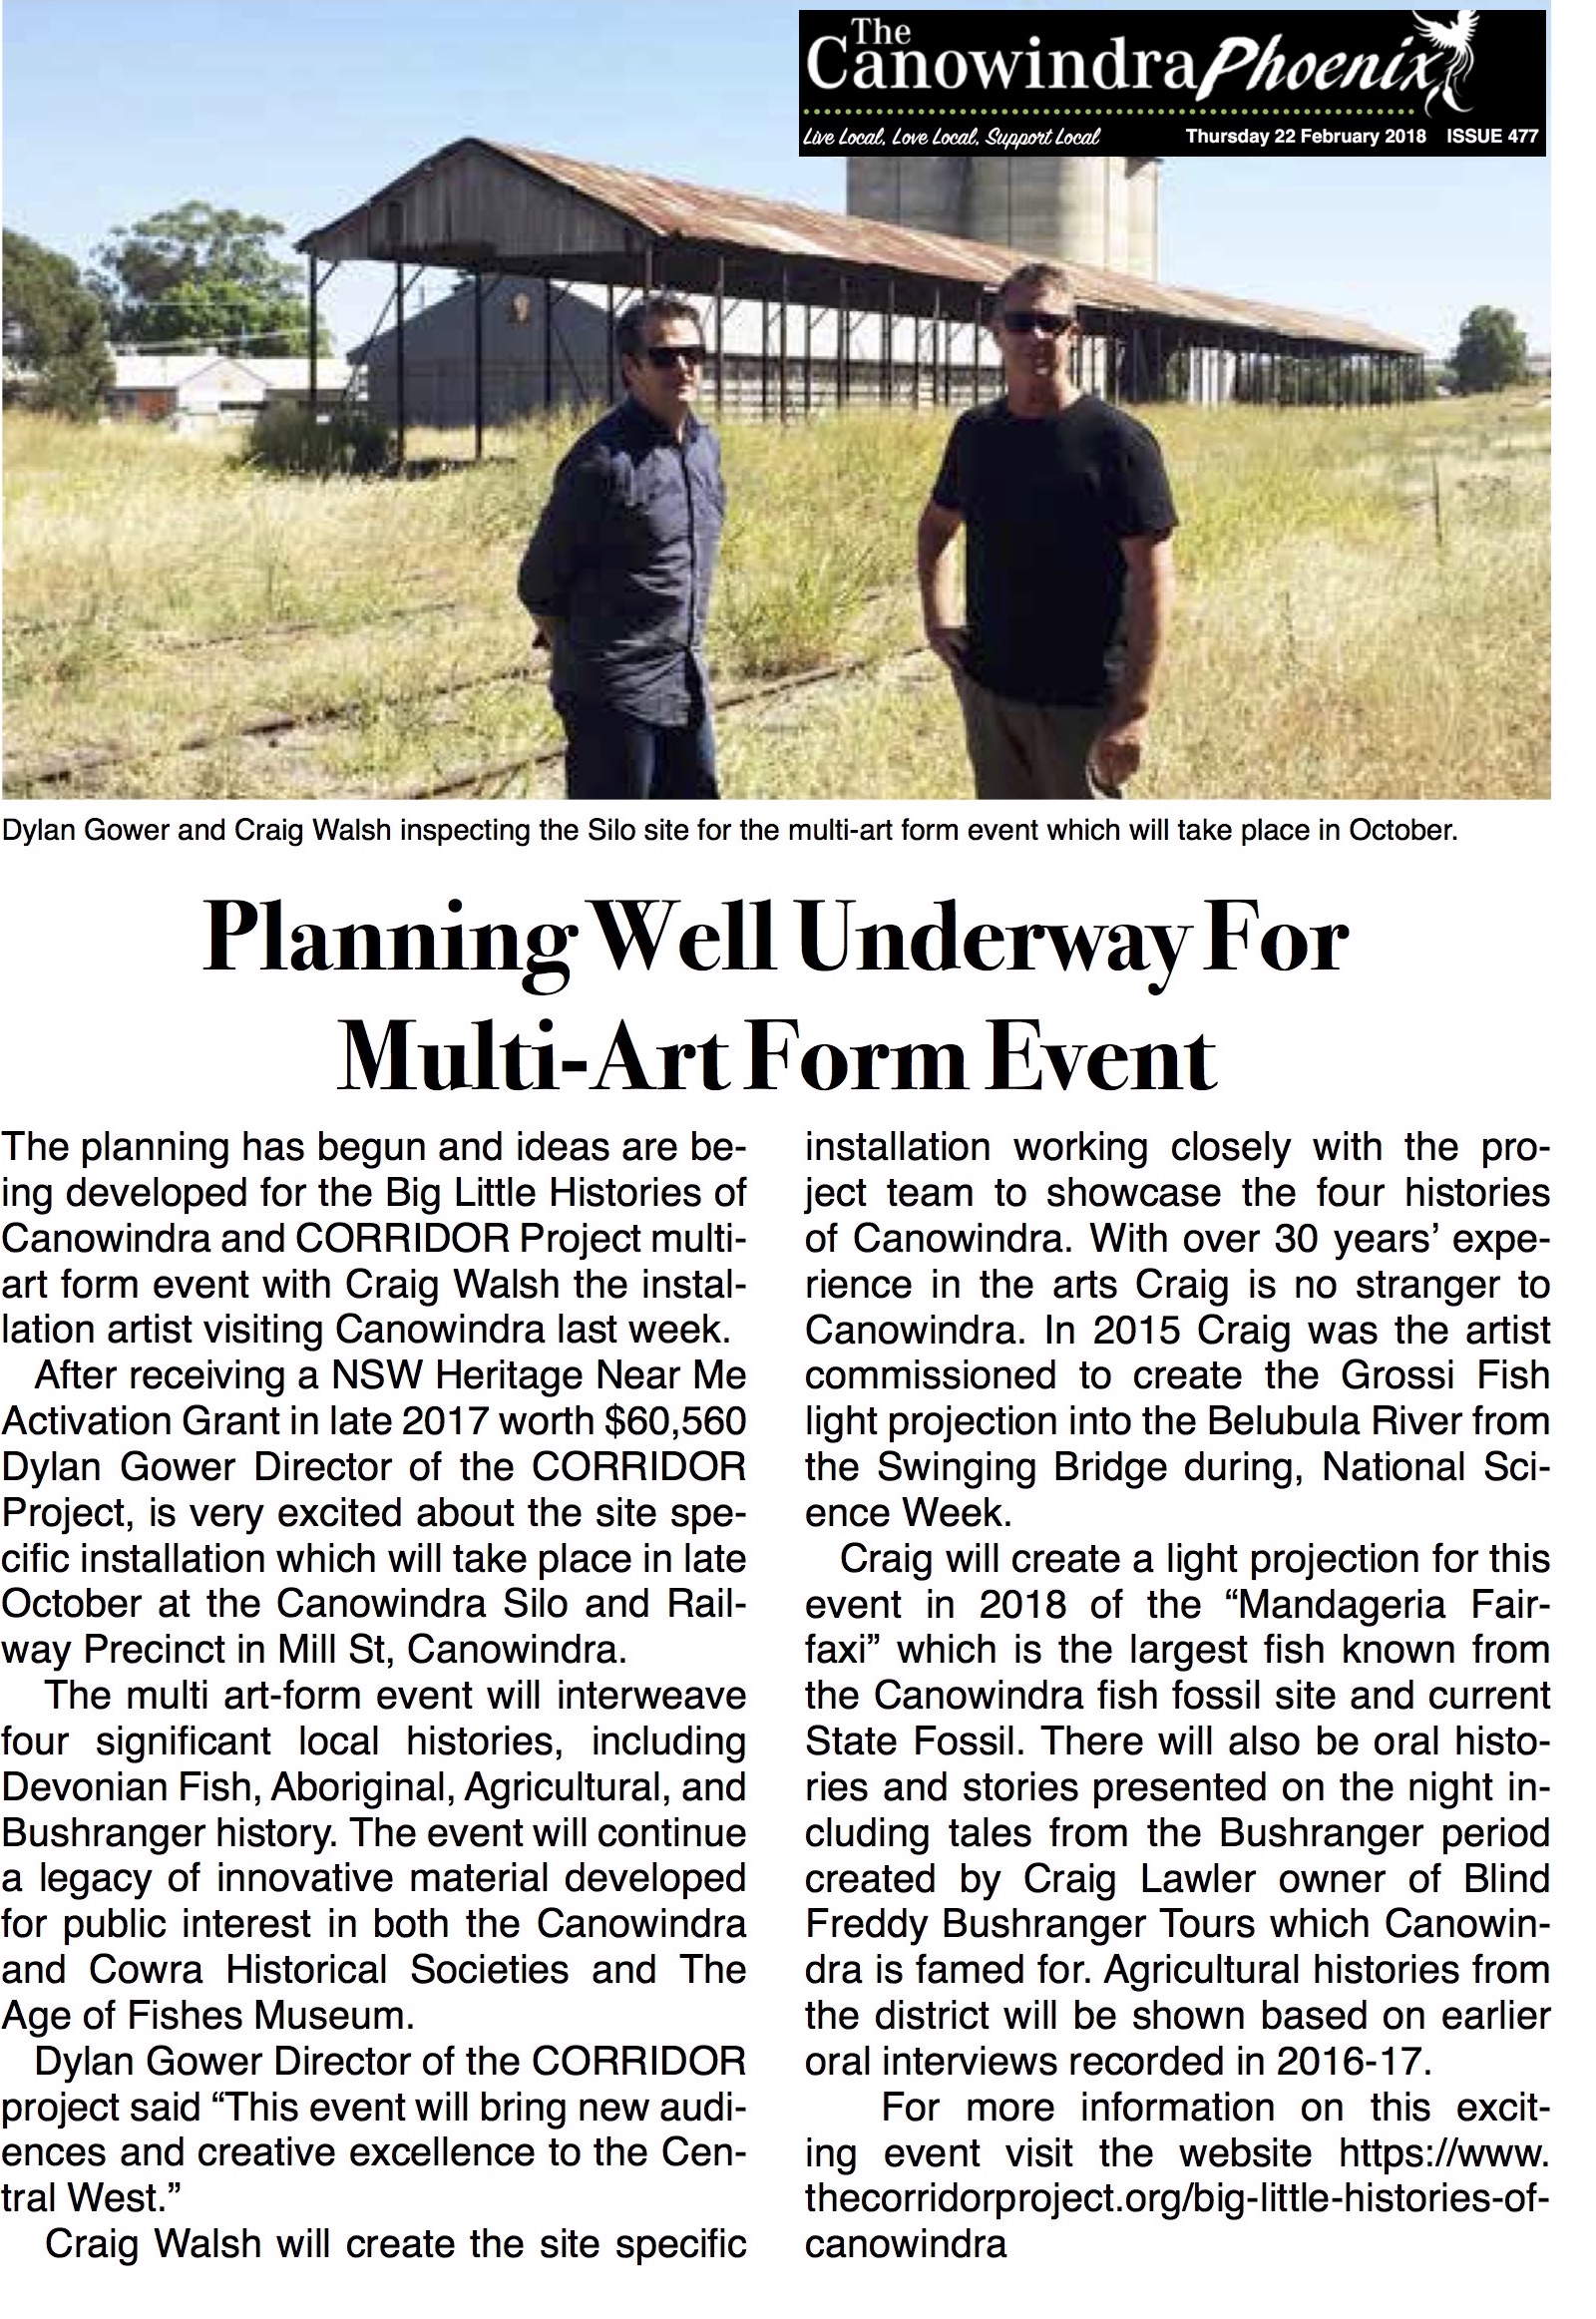 Canowindra_Phoenix_Issue_477_220218_EMAIL 2 (dragged).jpg